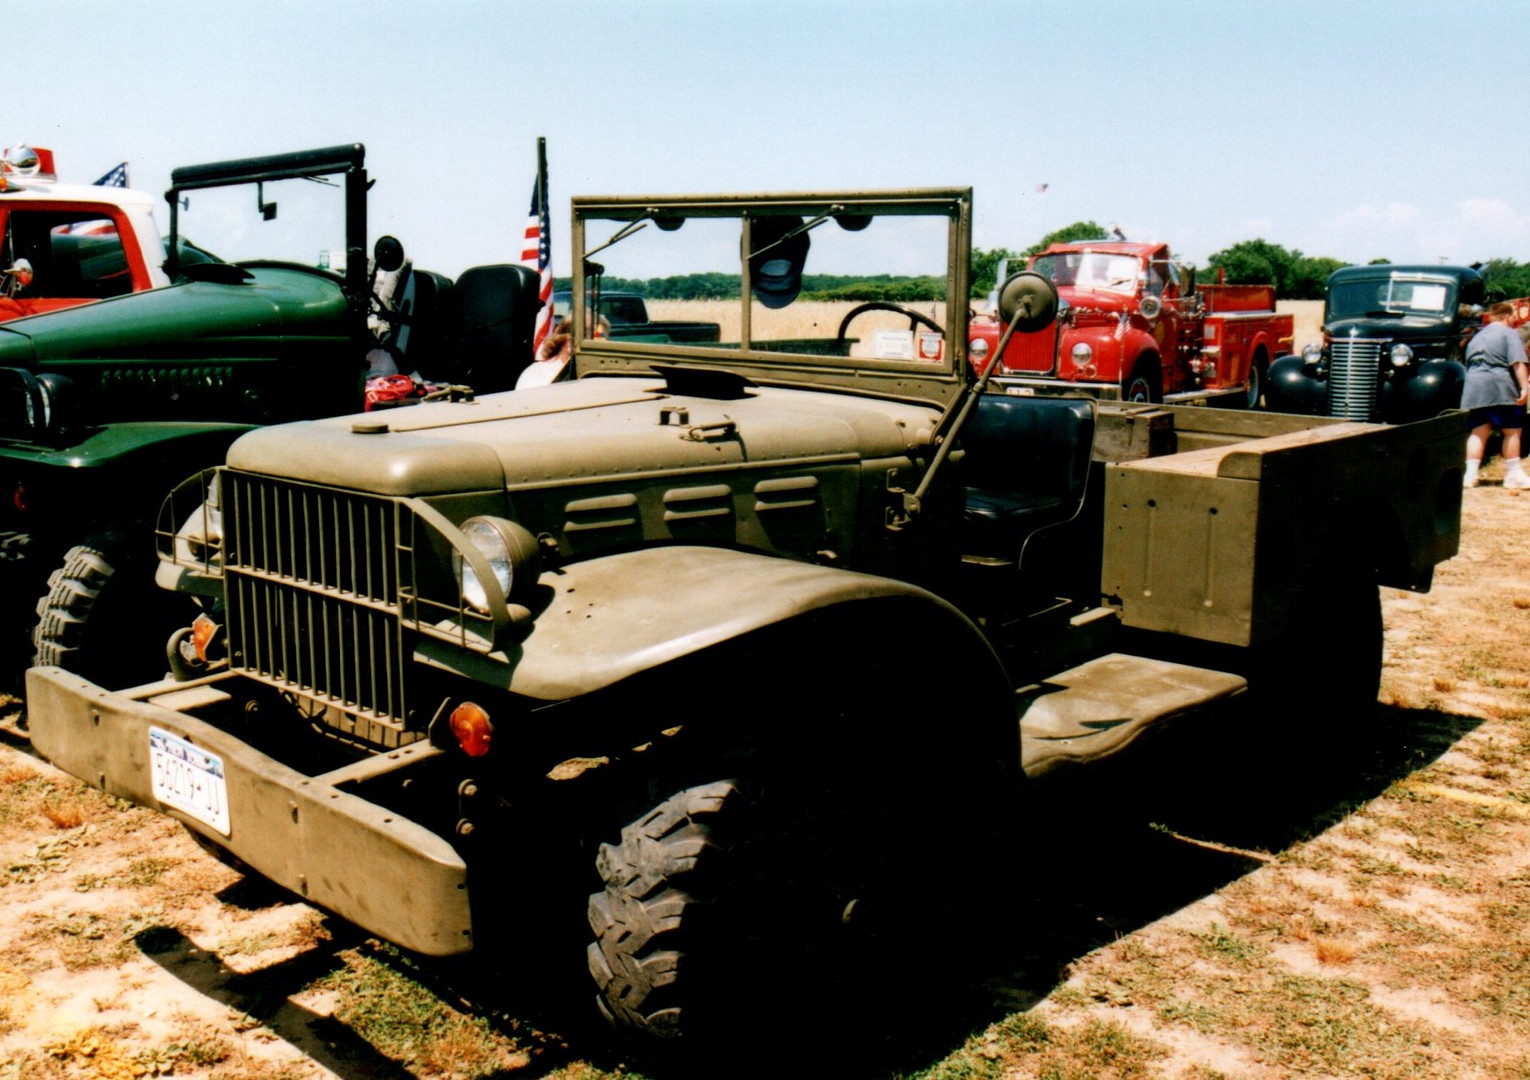 1942 Dodge WC-51 command car - Harry Miller